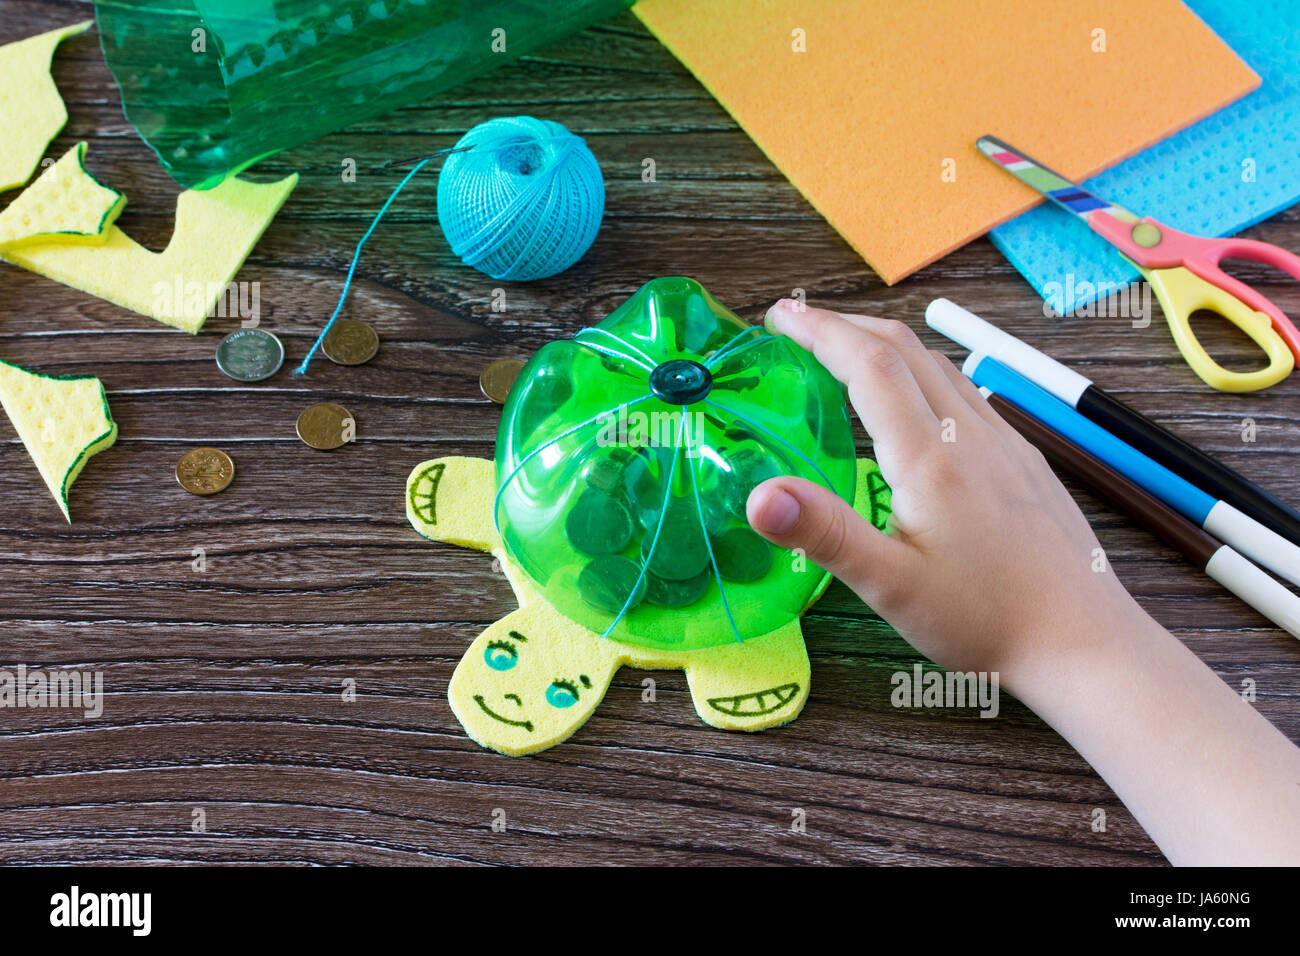 The Child Holds A Childrens Hand Craft From Plastic Bottle For Money Piggy Bank Handmade Project Of Creativity Handicrafts Crafts Fo